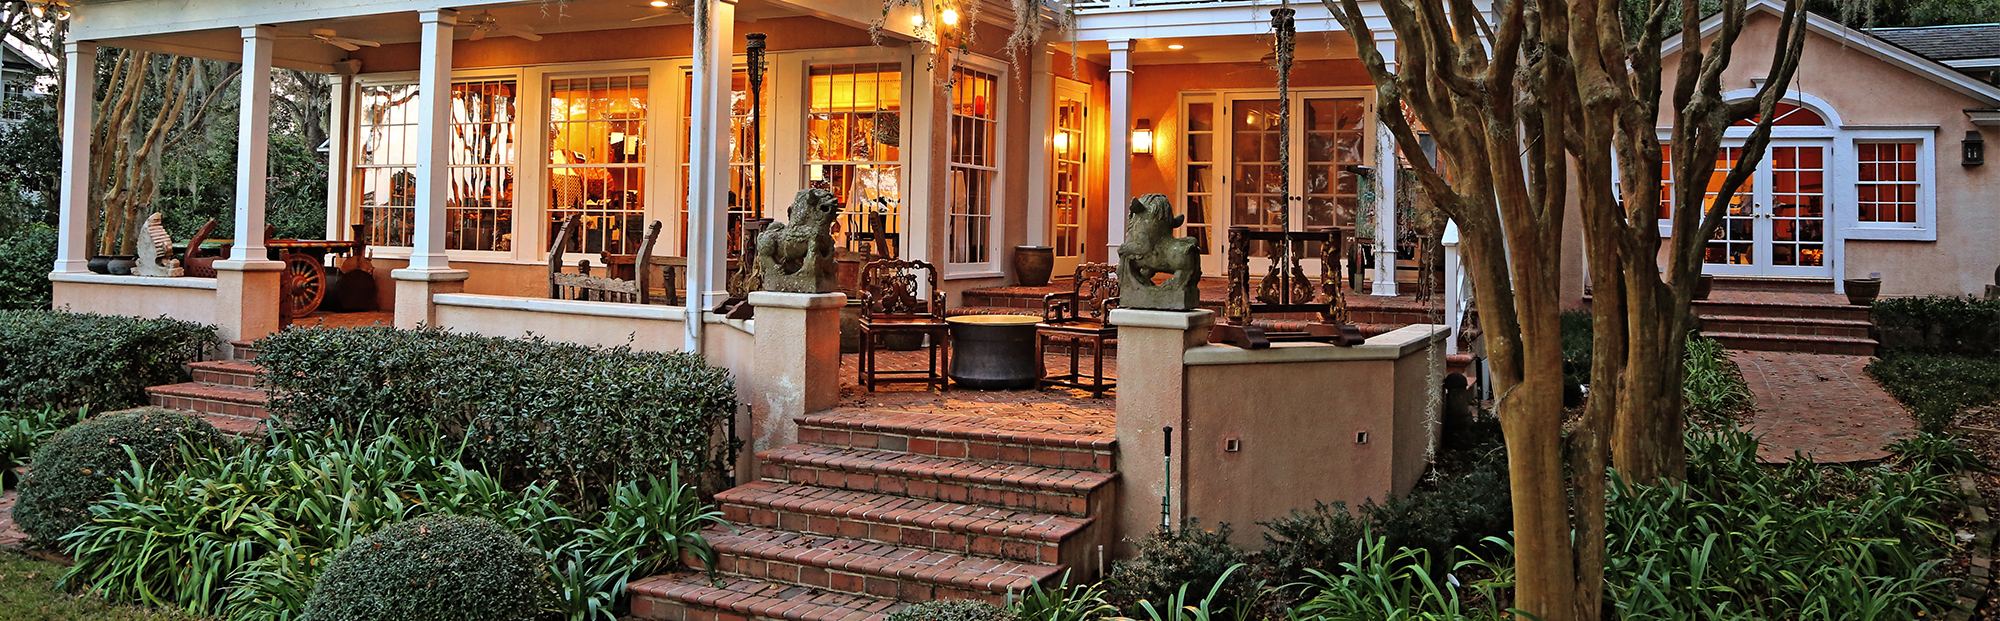 iGavel Interiors: Jacksonville, Florida - Asian Art in a Tropical Setting